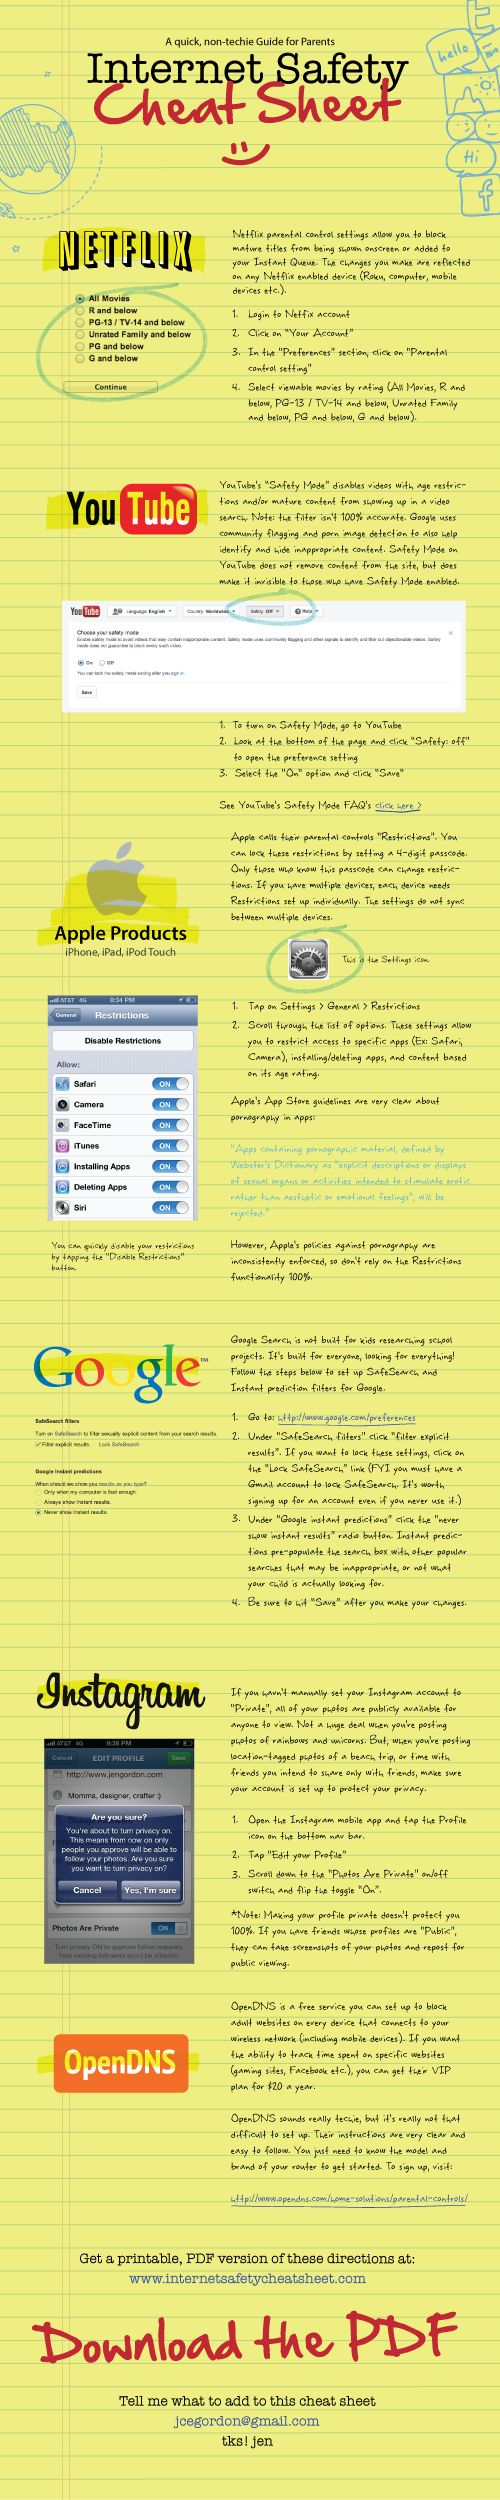 Internet Safety for Kids and Teens. This is a quick cheat sheet for non-techie parents who care about keeping their kids safer online. It takes about 30 - 45 minutes to make these simple changes! www.internetsafet... #youtube #google #iphone: For Kids, Mobiles Learning, Cheat Sheets, Safety Cheat, Safety Tips, Education Technology, Non Techi, Internet Safety, Teacher